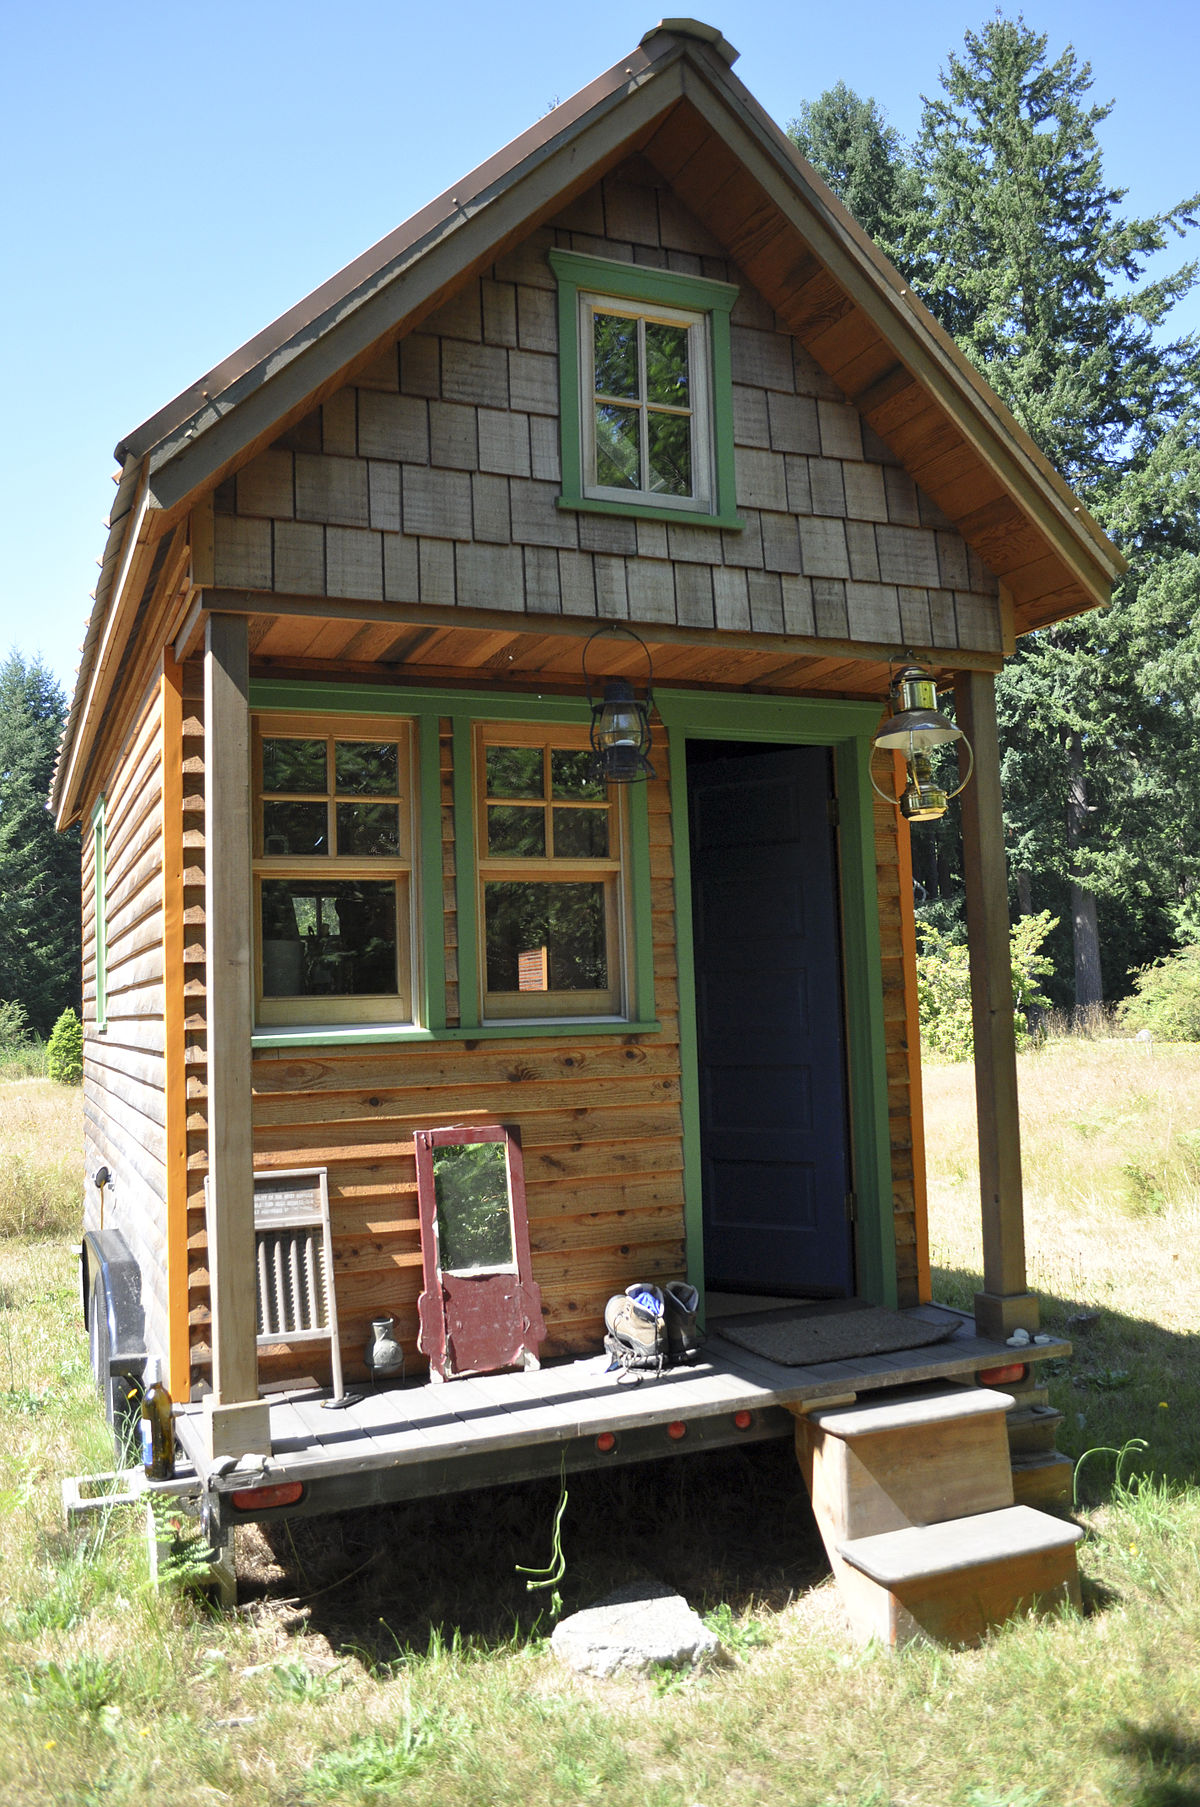 Tiny house movement wikipedia for Minimalist living movement